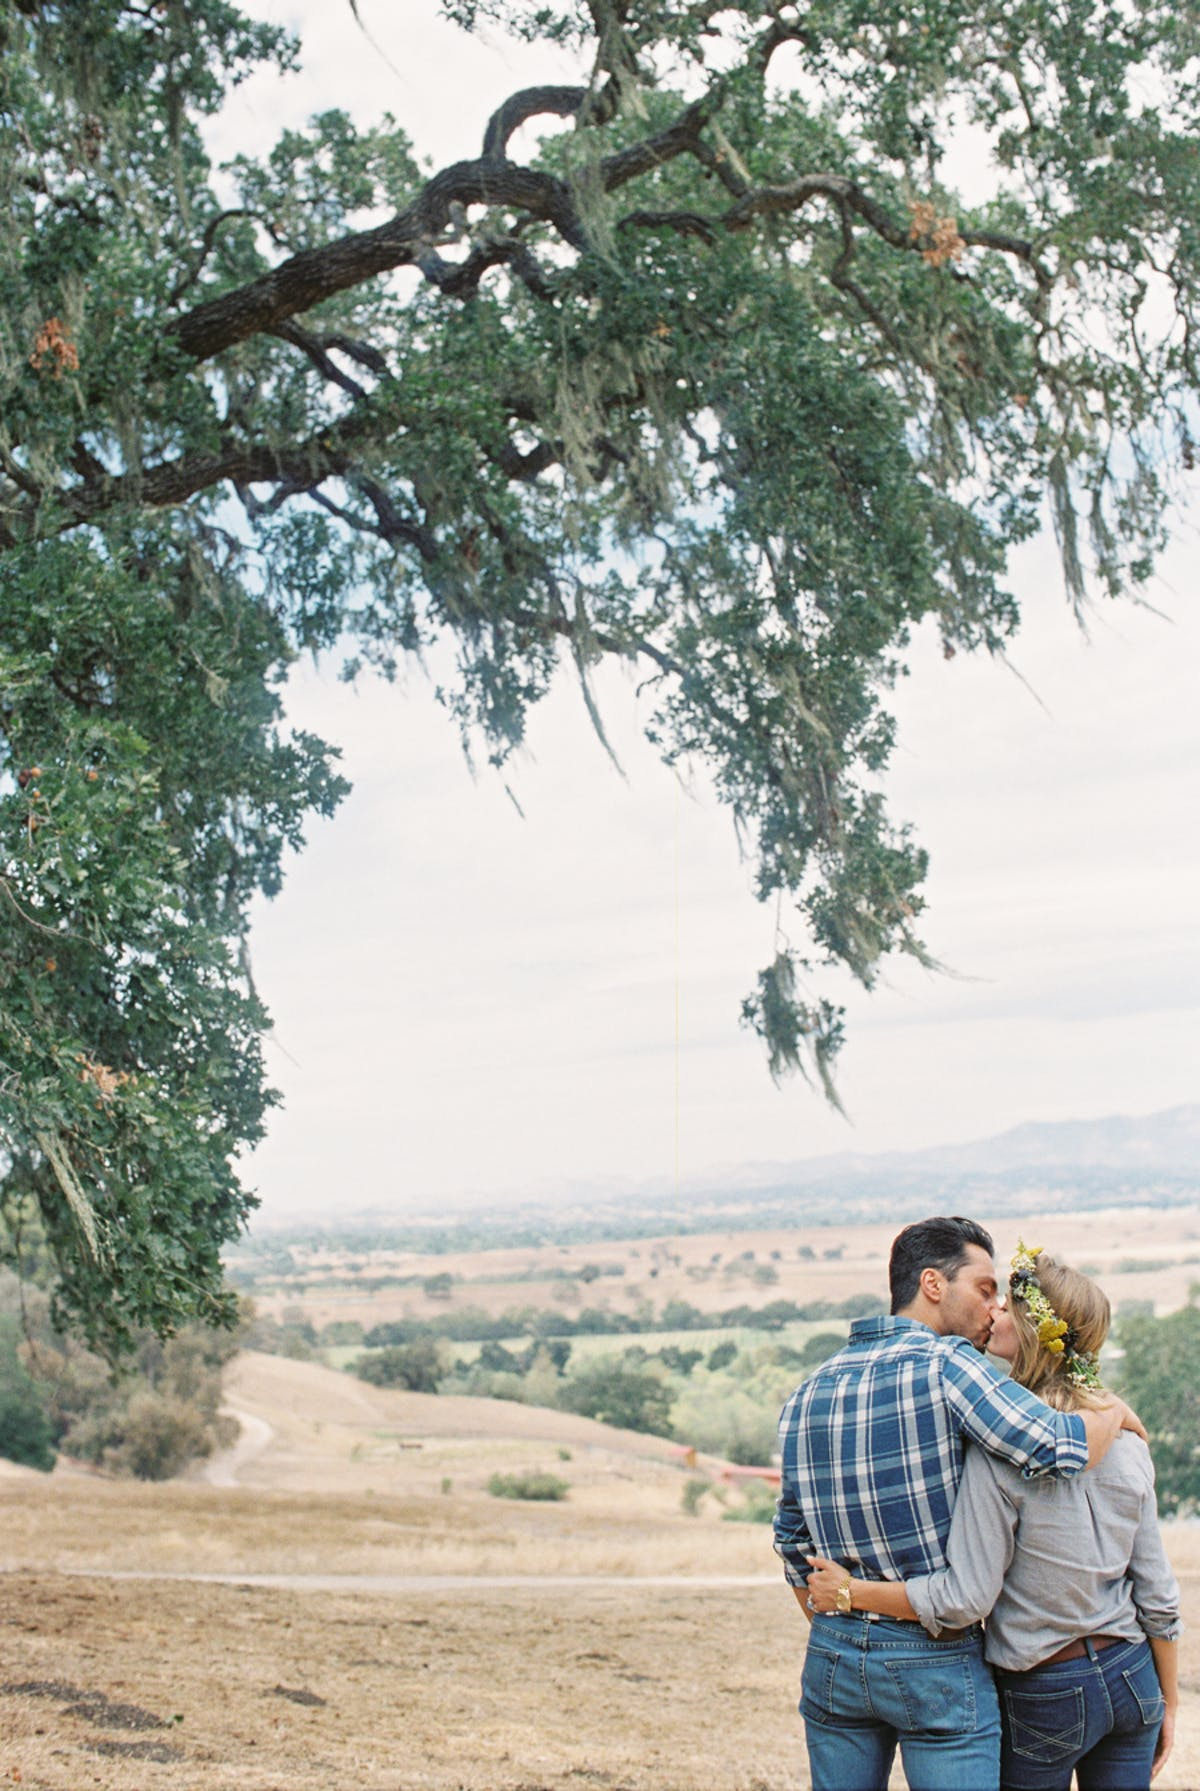 www.santabarbarawedding.com | Michael + Anna Costa Photography | Refugio Ranch | Alegria by Design | Like a Letter Videography | Anna Le Pley Taylor | Couple Embracing